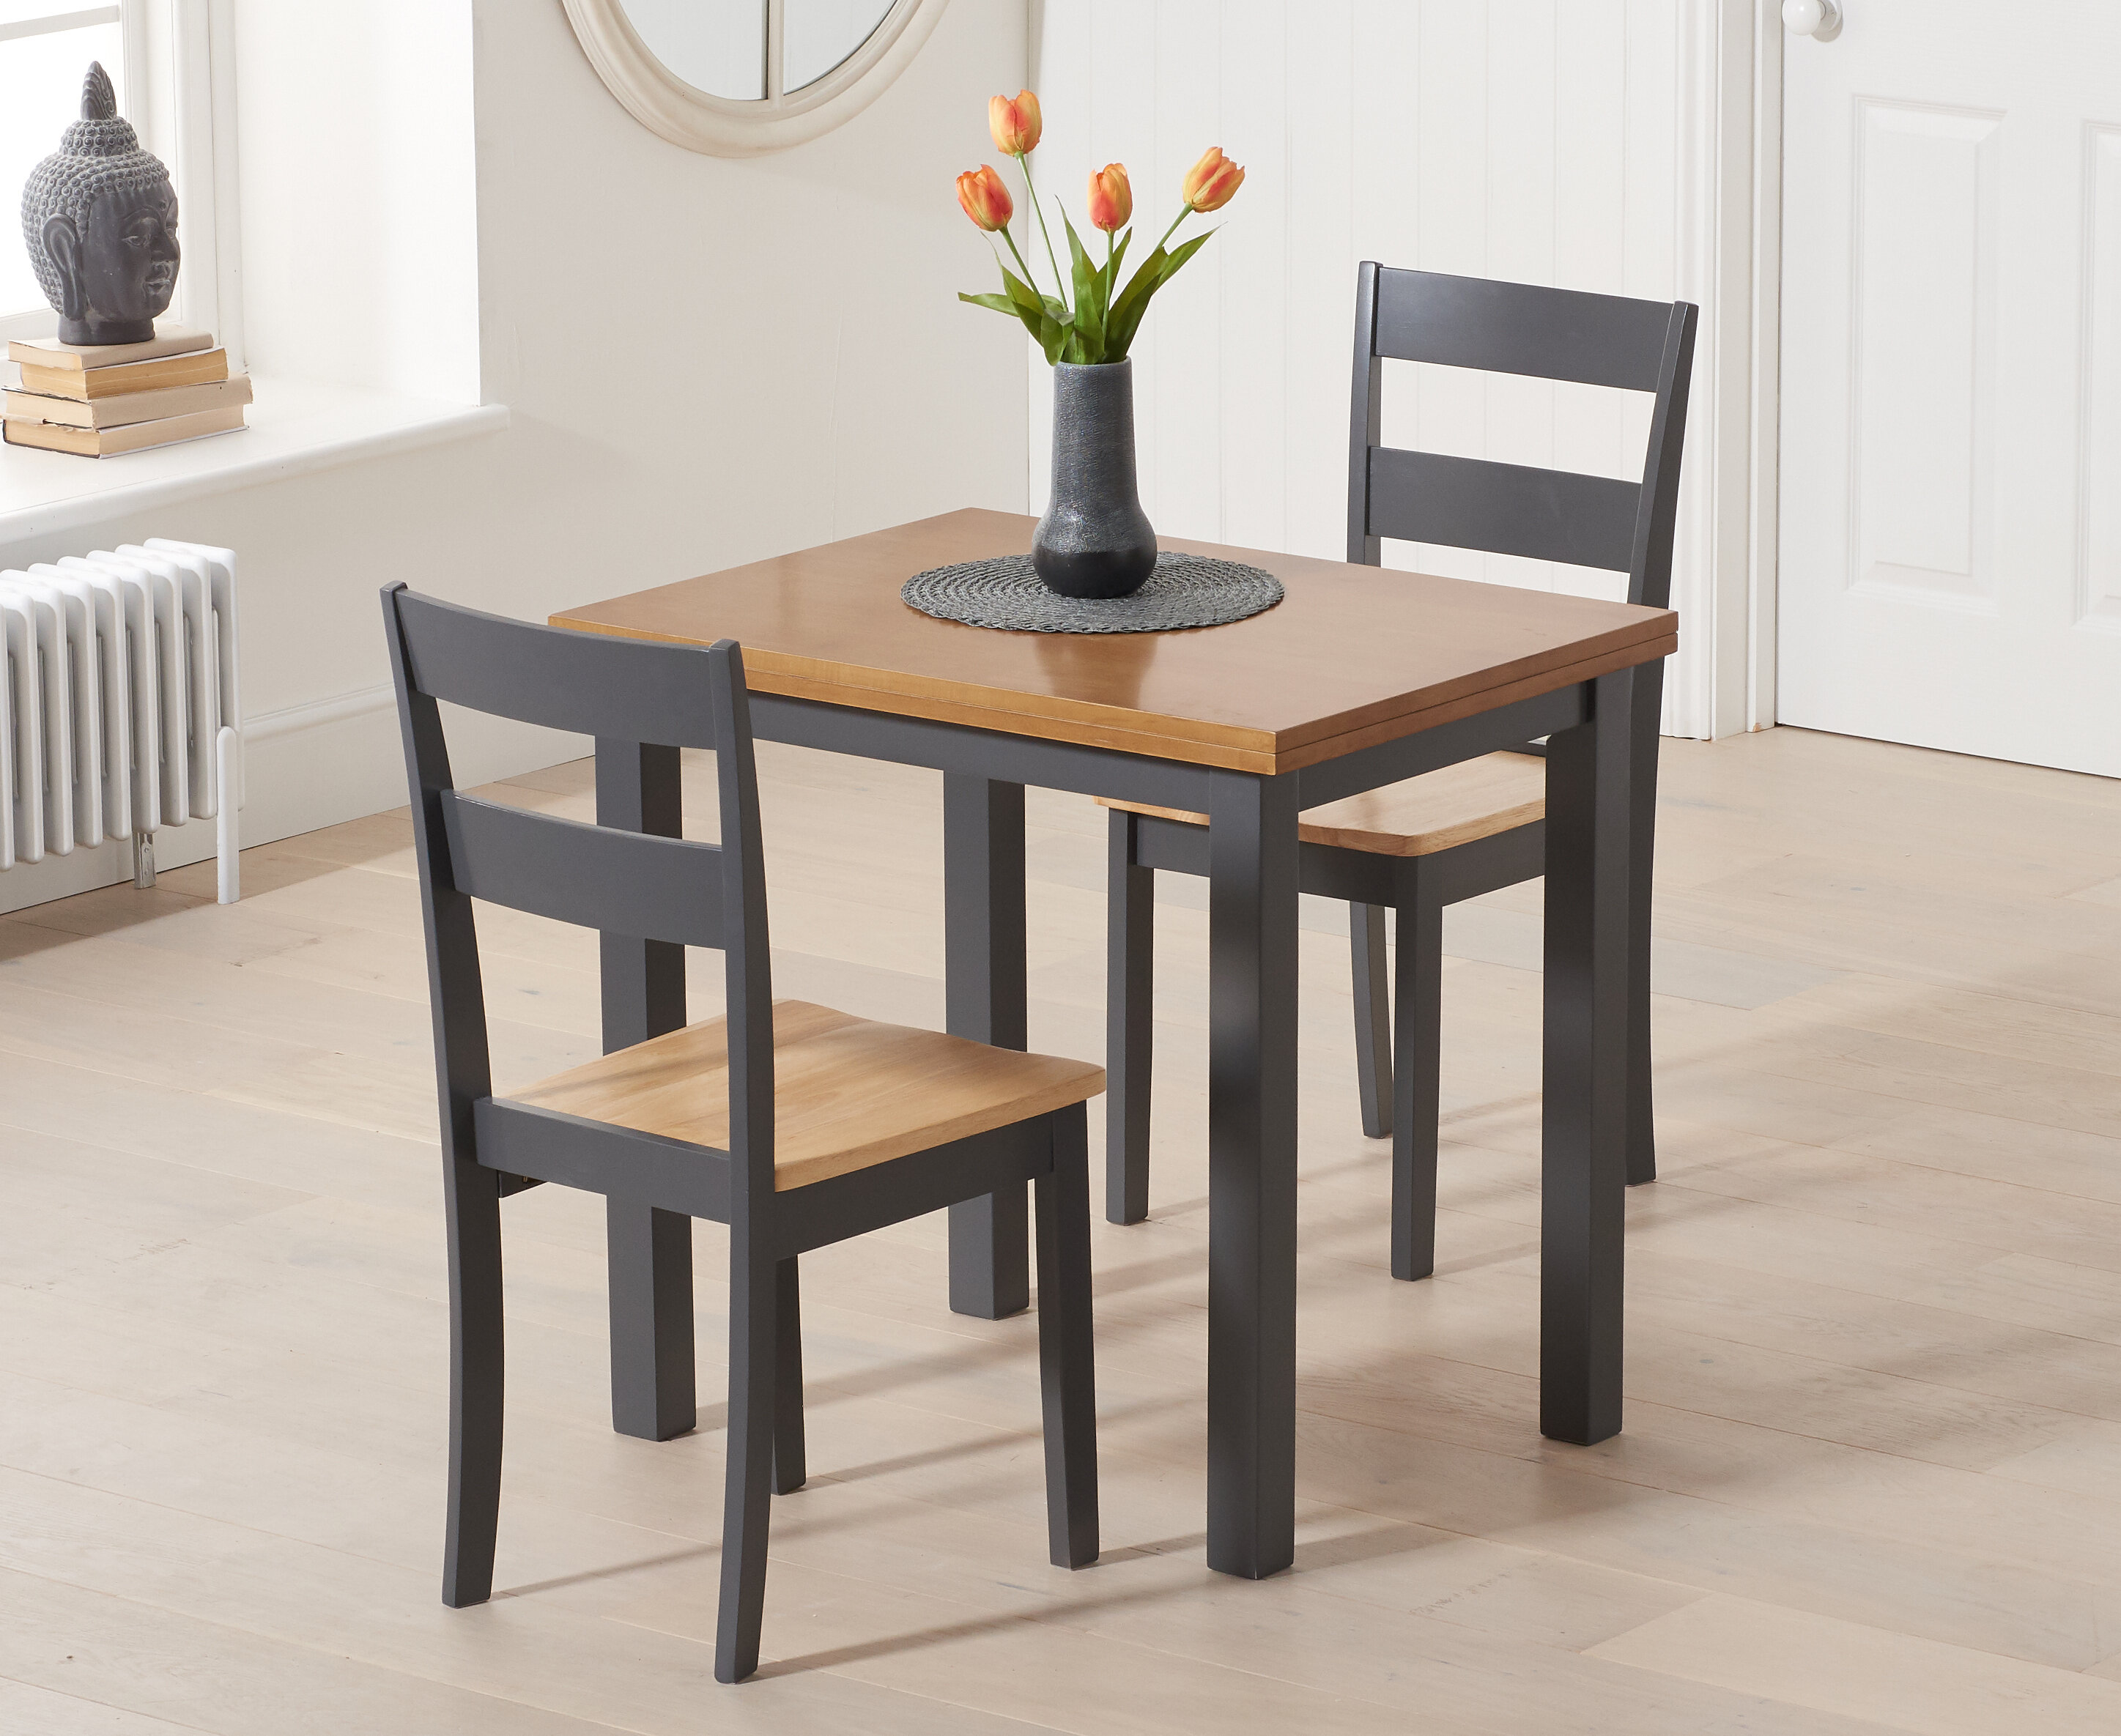 Beachcrest Home Bardwell Folding Dining Set With 2 Chairs Wayfair Co Uk